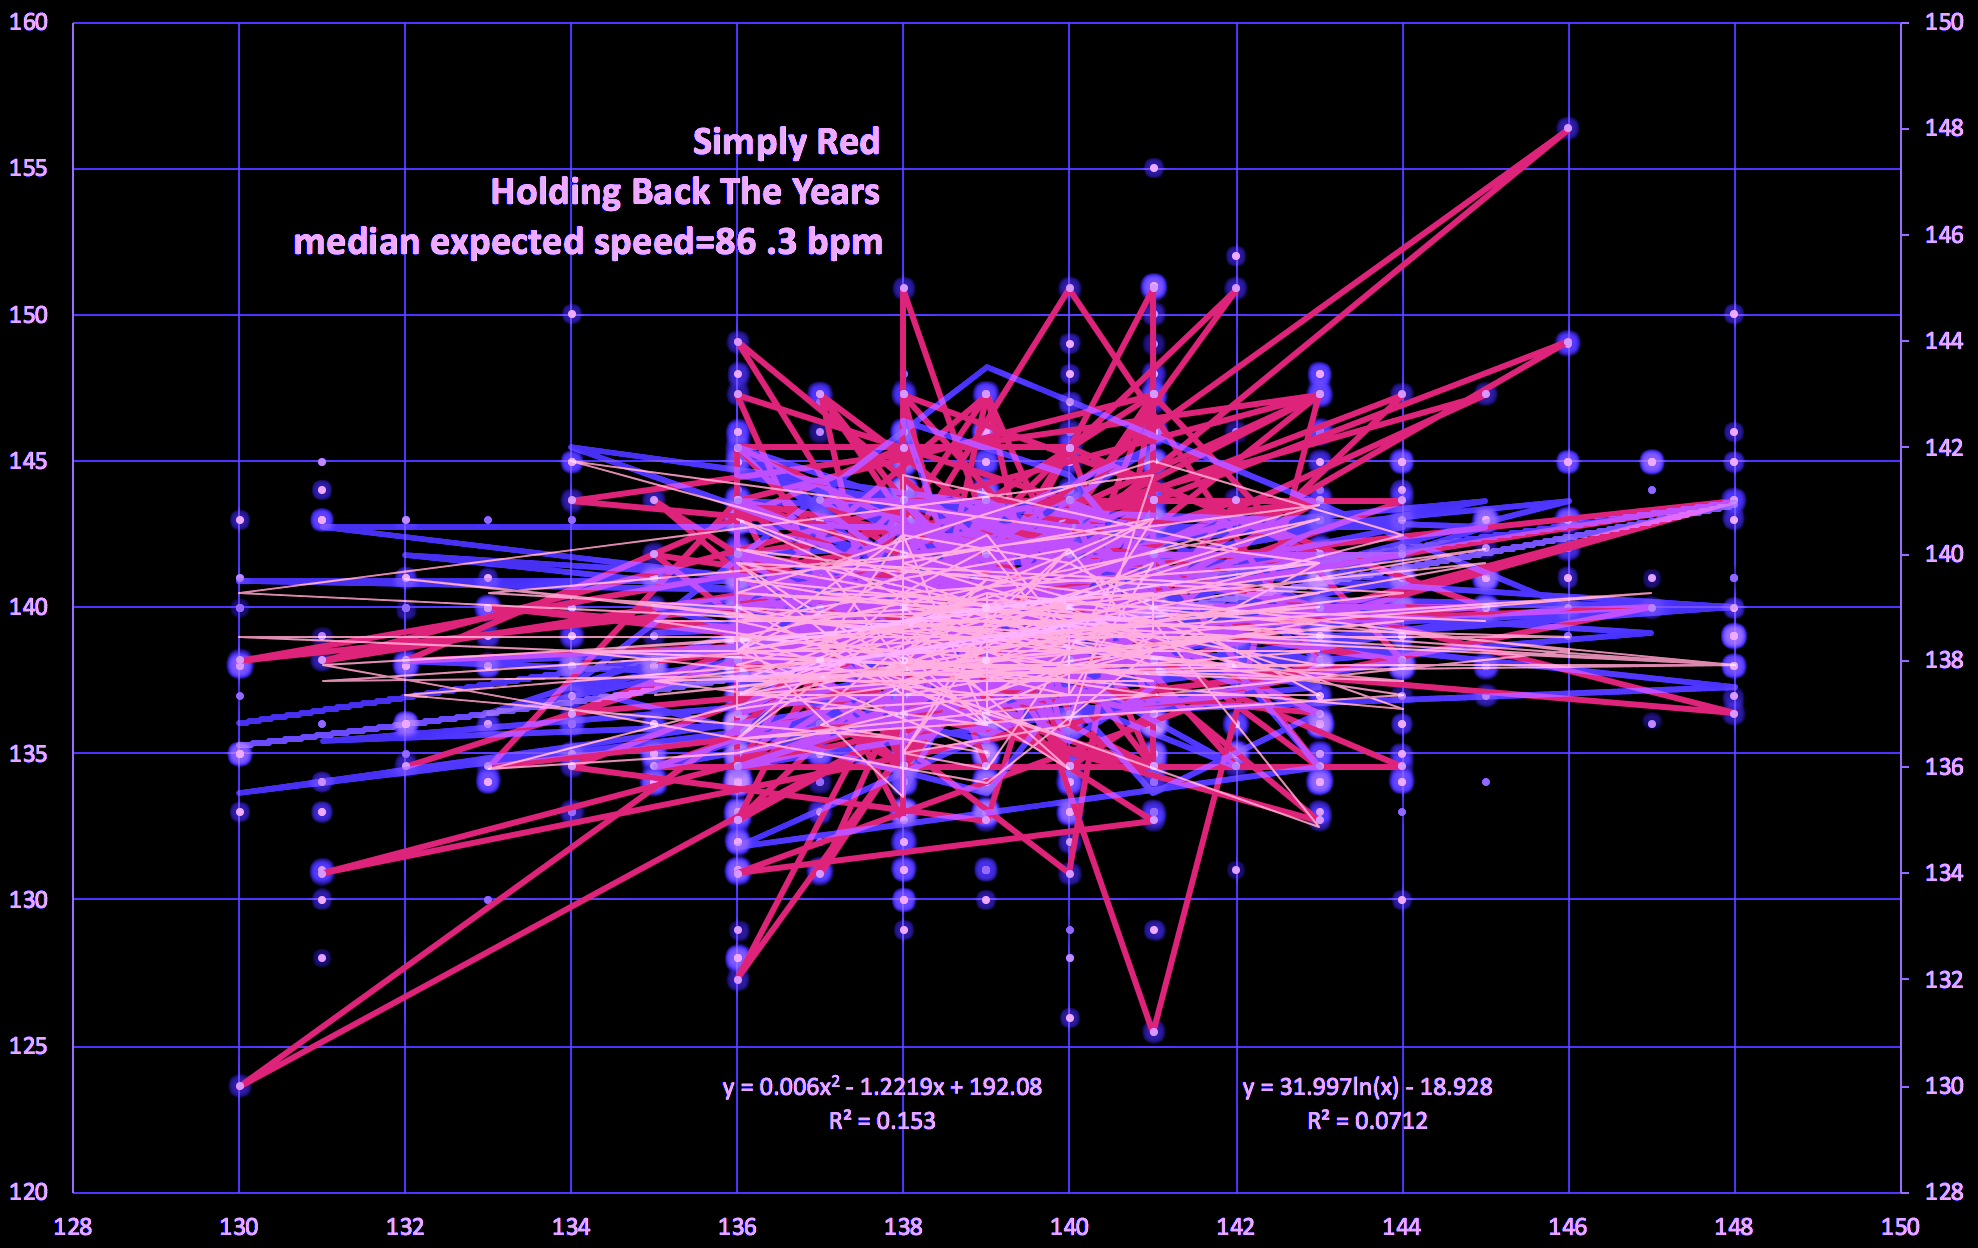 simply-red-holding-back-the-years-matherton-speed-diagram